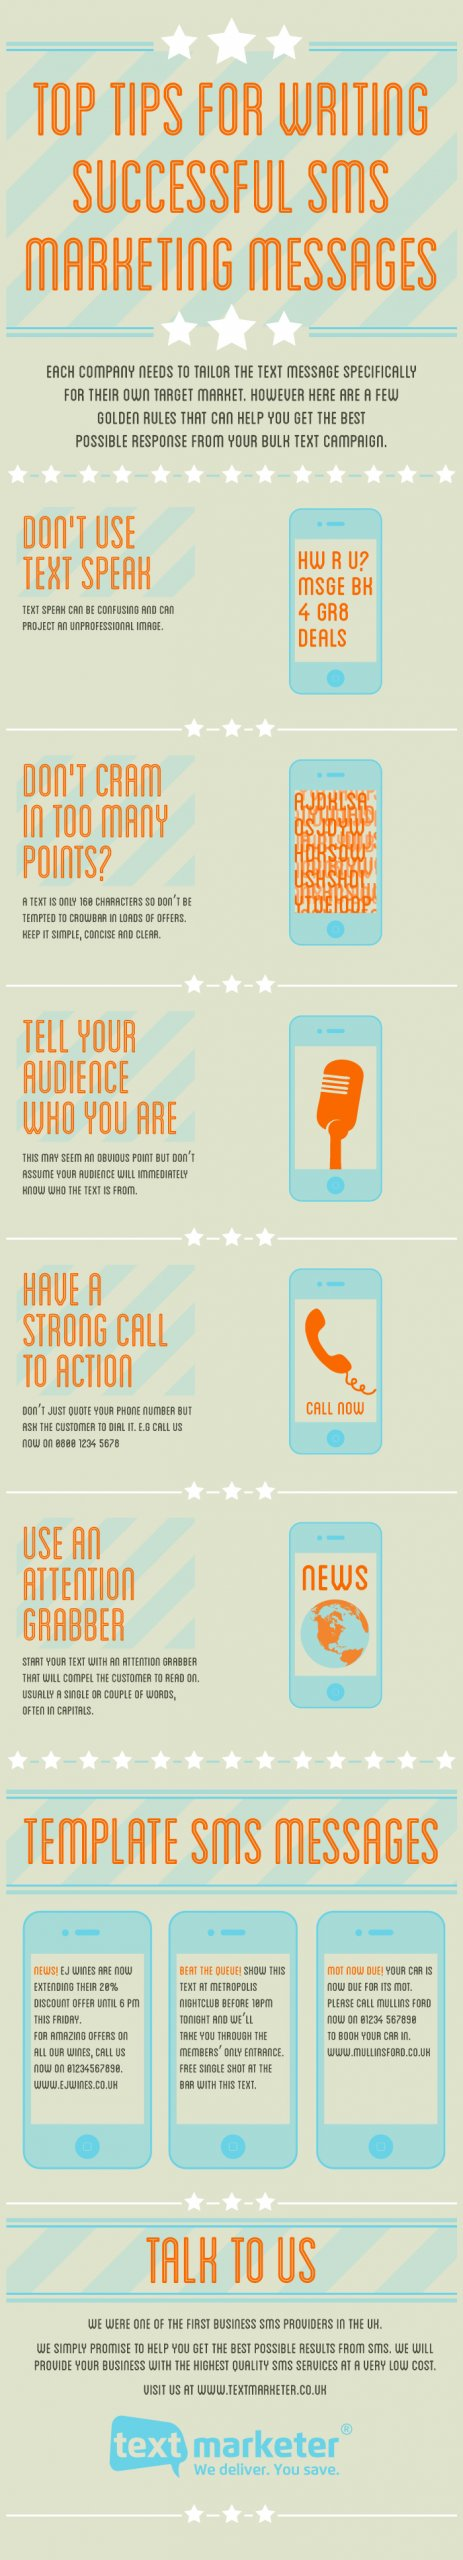 Text Marketer top tips for successful marketing messages infographic